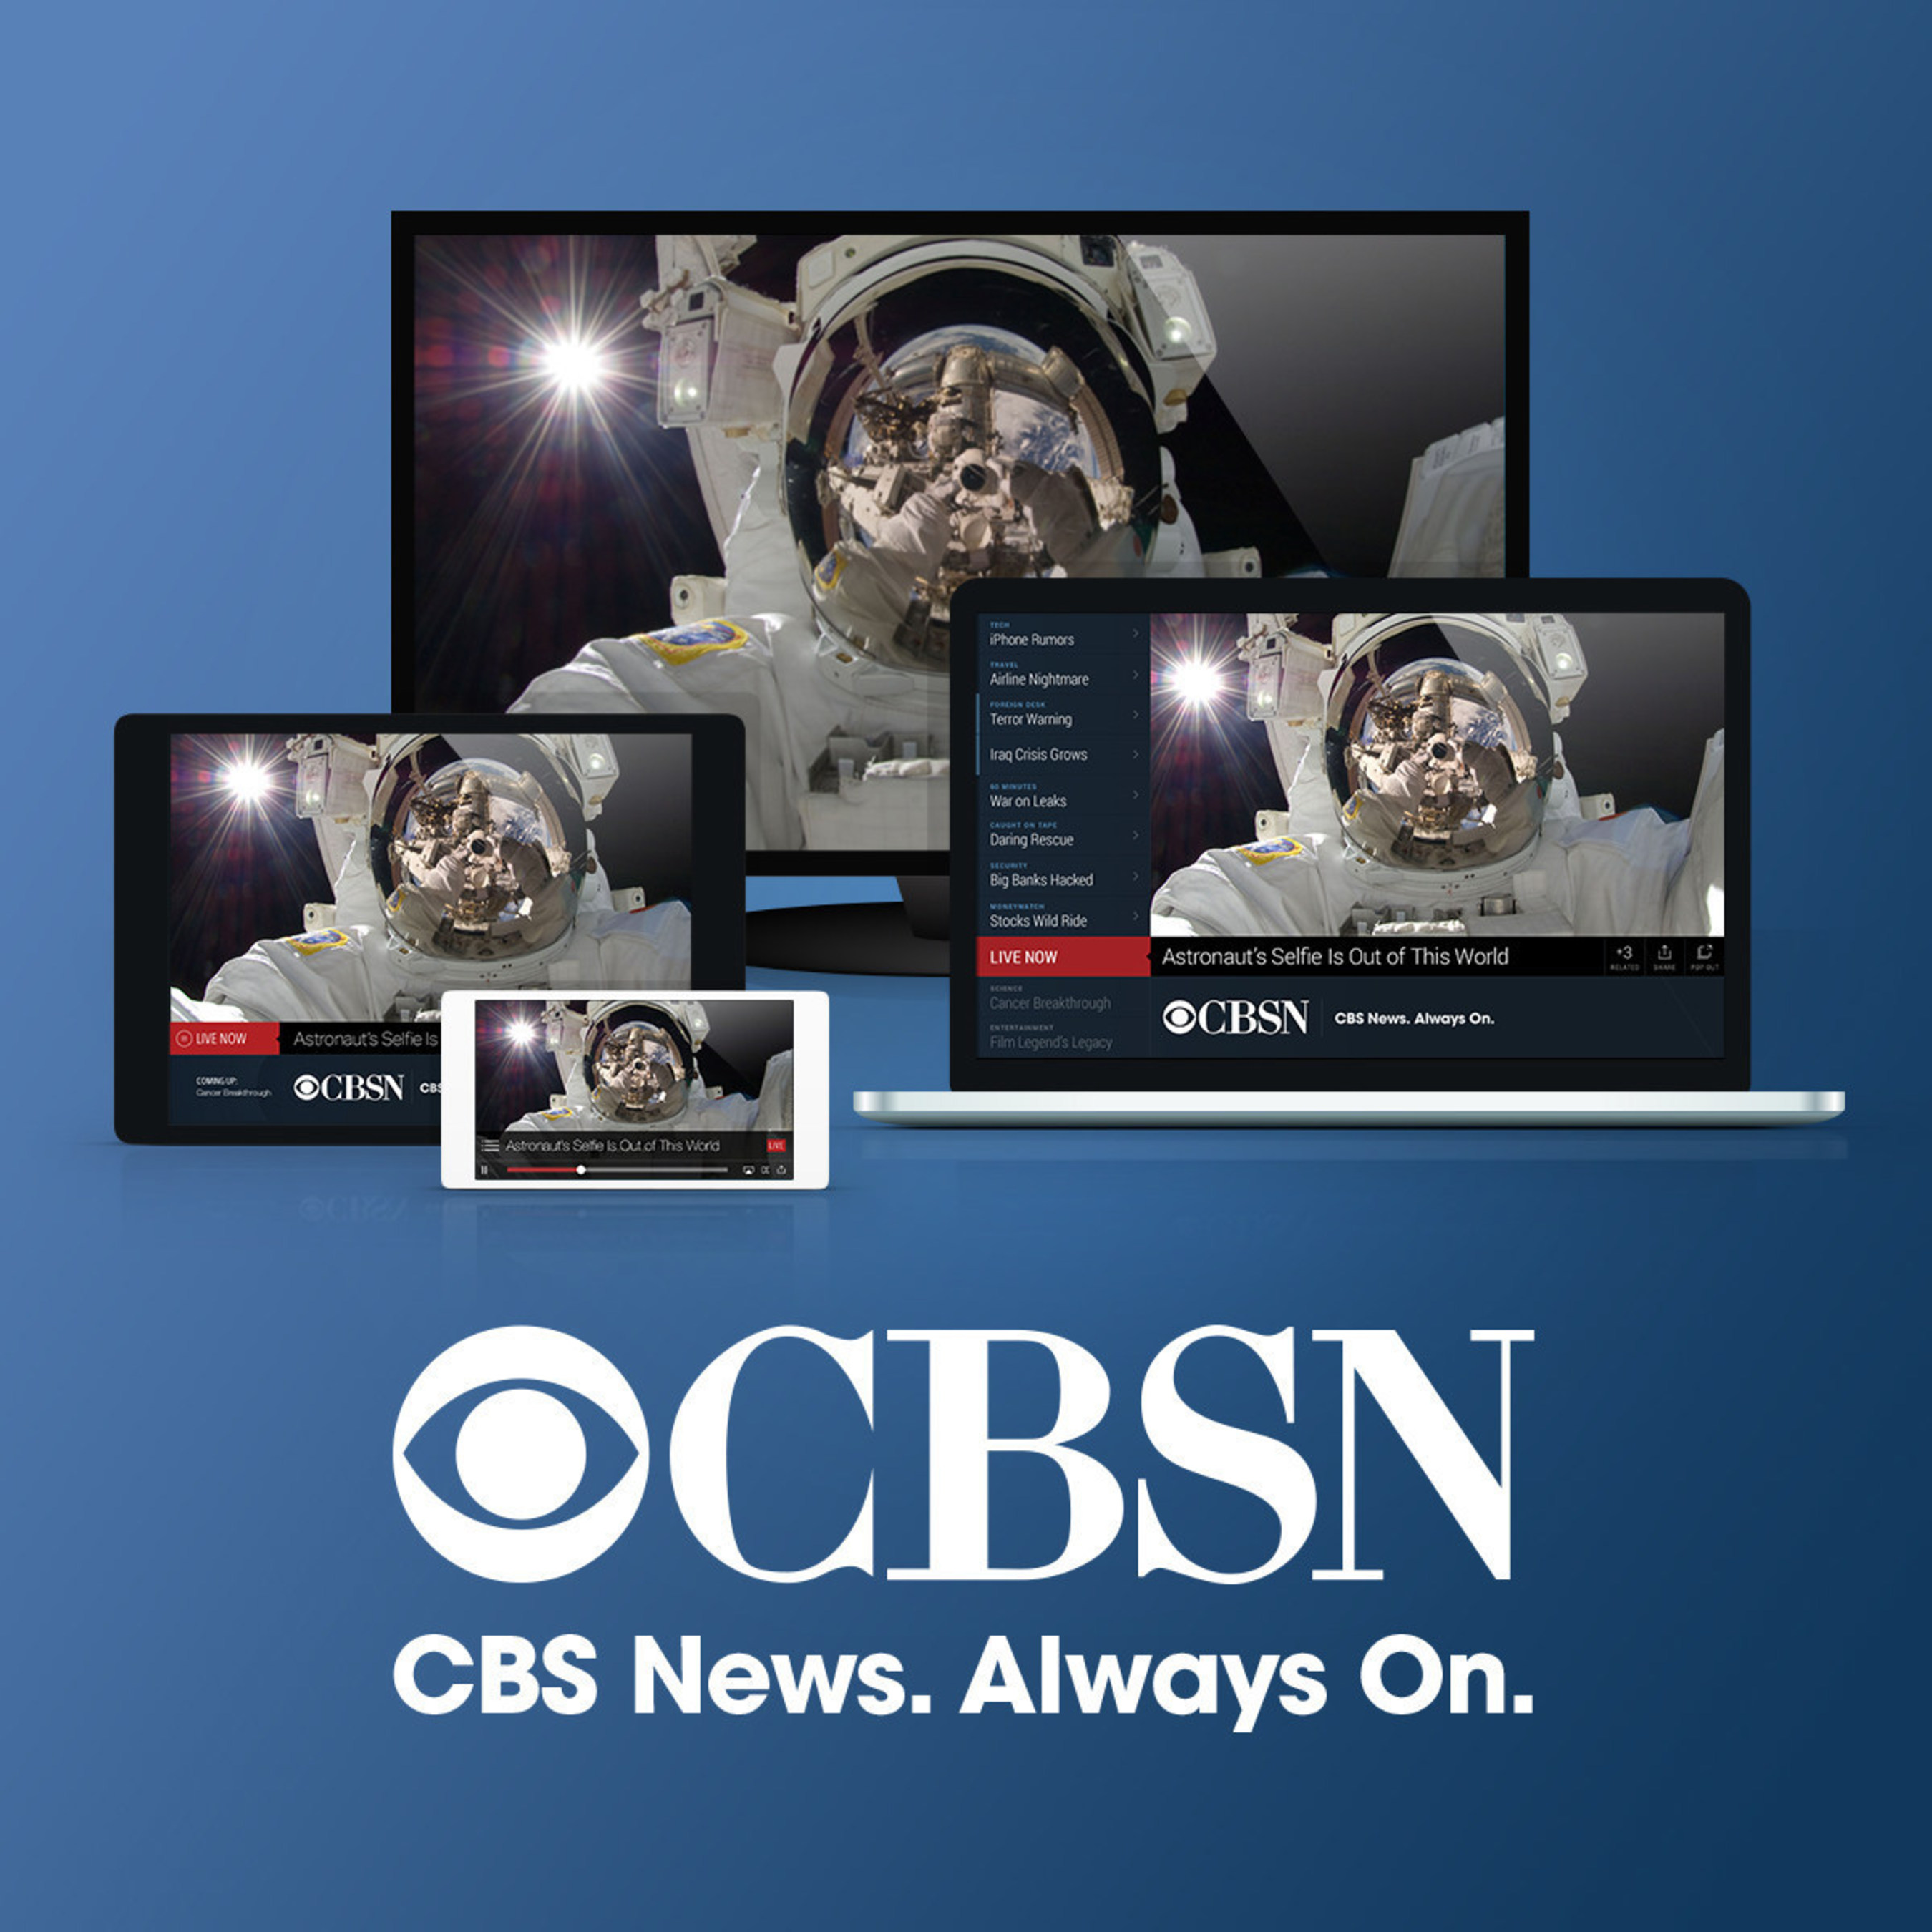 CBS Launches Interactive Streaming News Network CBSN, The